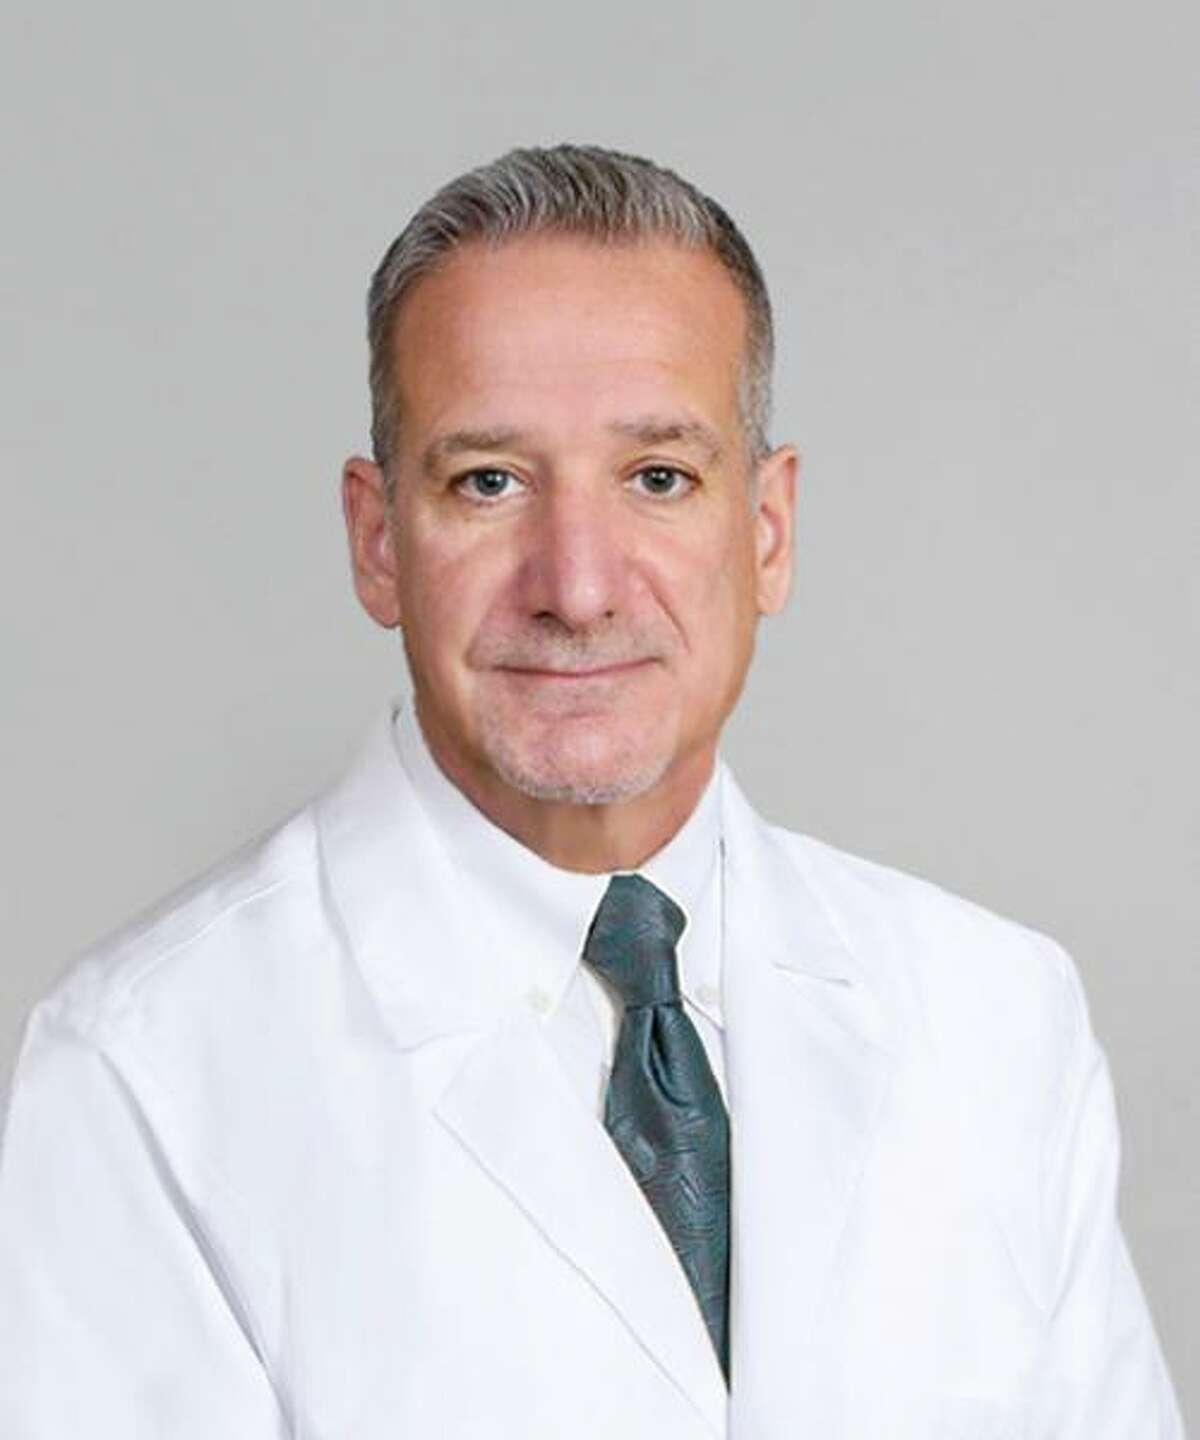 Dr. Richard Kaplon has joined the Nuvance Health Heart and Vascular Institute in his role as chief of cardiac surgery at Danbury Hospital.